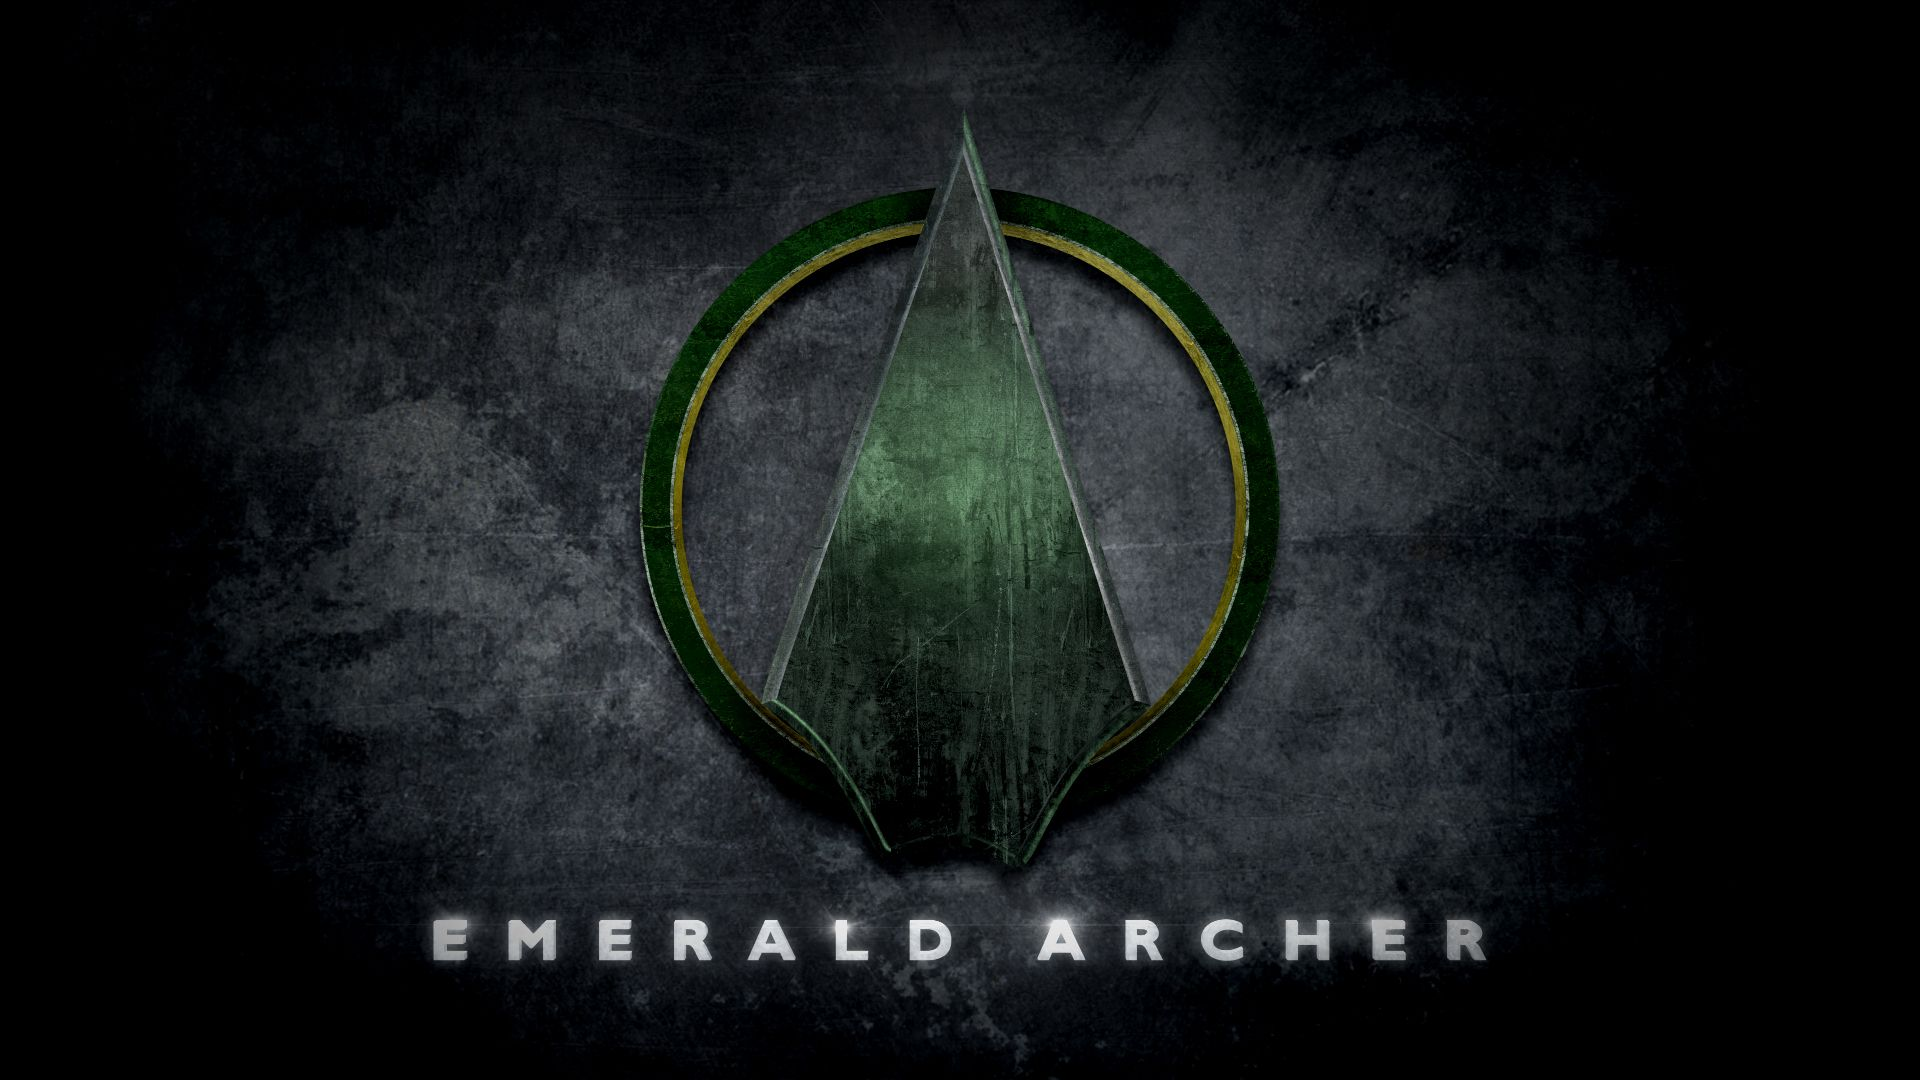 Green arrow emerald archer logo in the style of man of steel green arrow emerald archer logo in the style of man of steel voltagebd Gallery